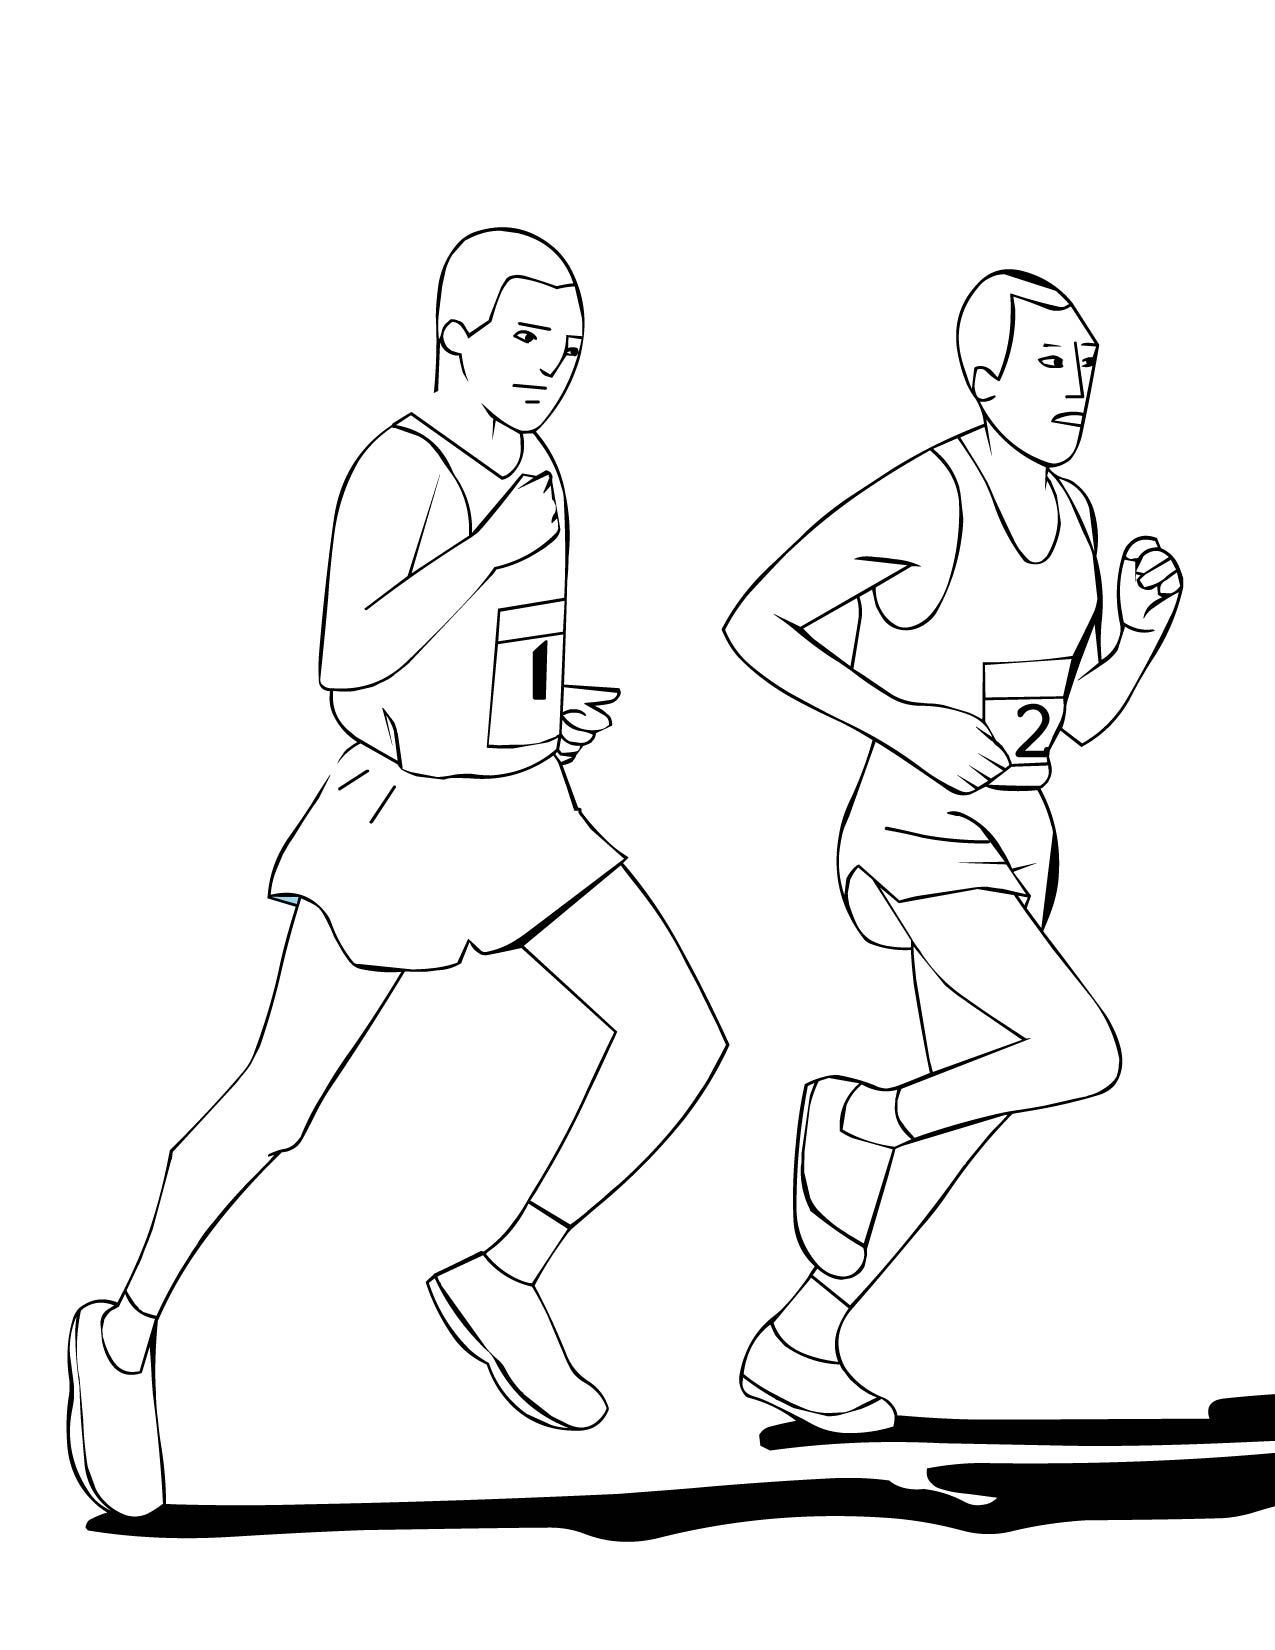 boy running coloring page running coloring pages getcoloringpagescom page running coloring boy